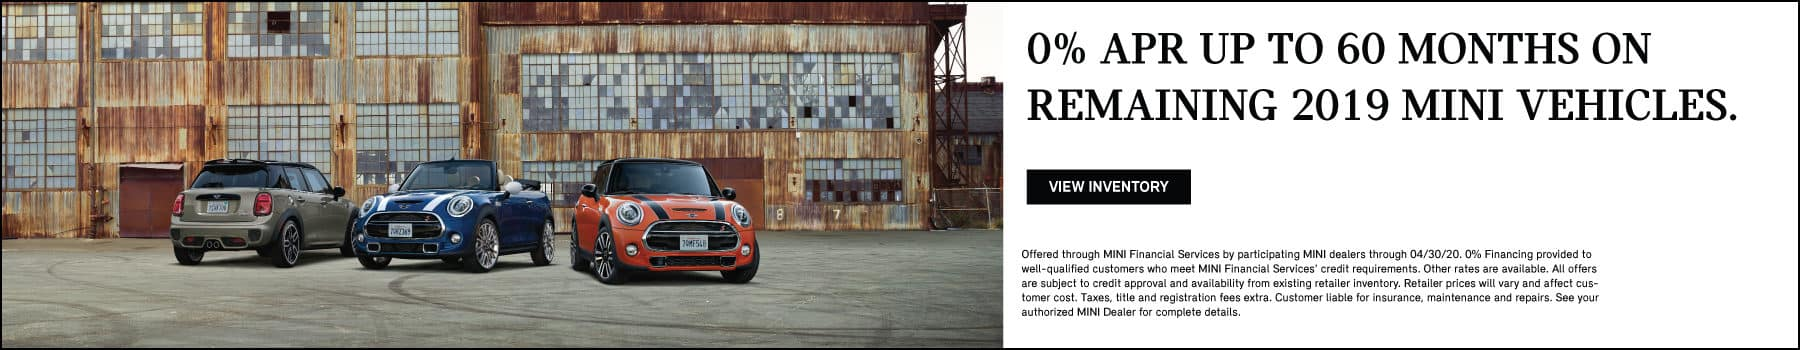 0% APR UP TO 60 MONTHS ON REMAINING 2019 MINI VEHICLES. VIEW INVENTORY BUTTON. SEE DEALER FOR COMPLETE DETAILS.